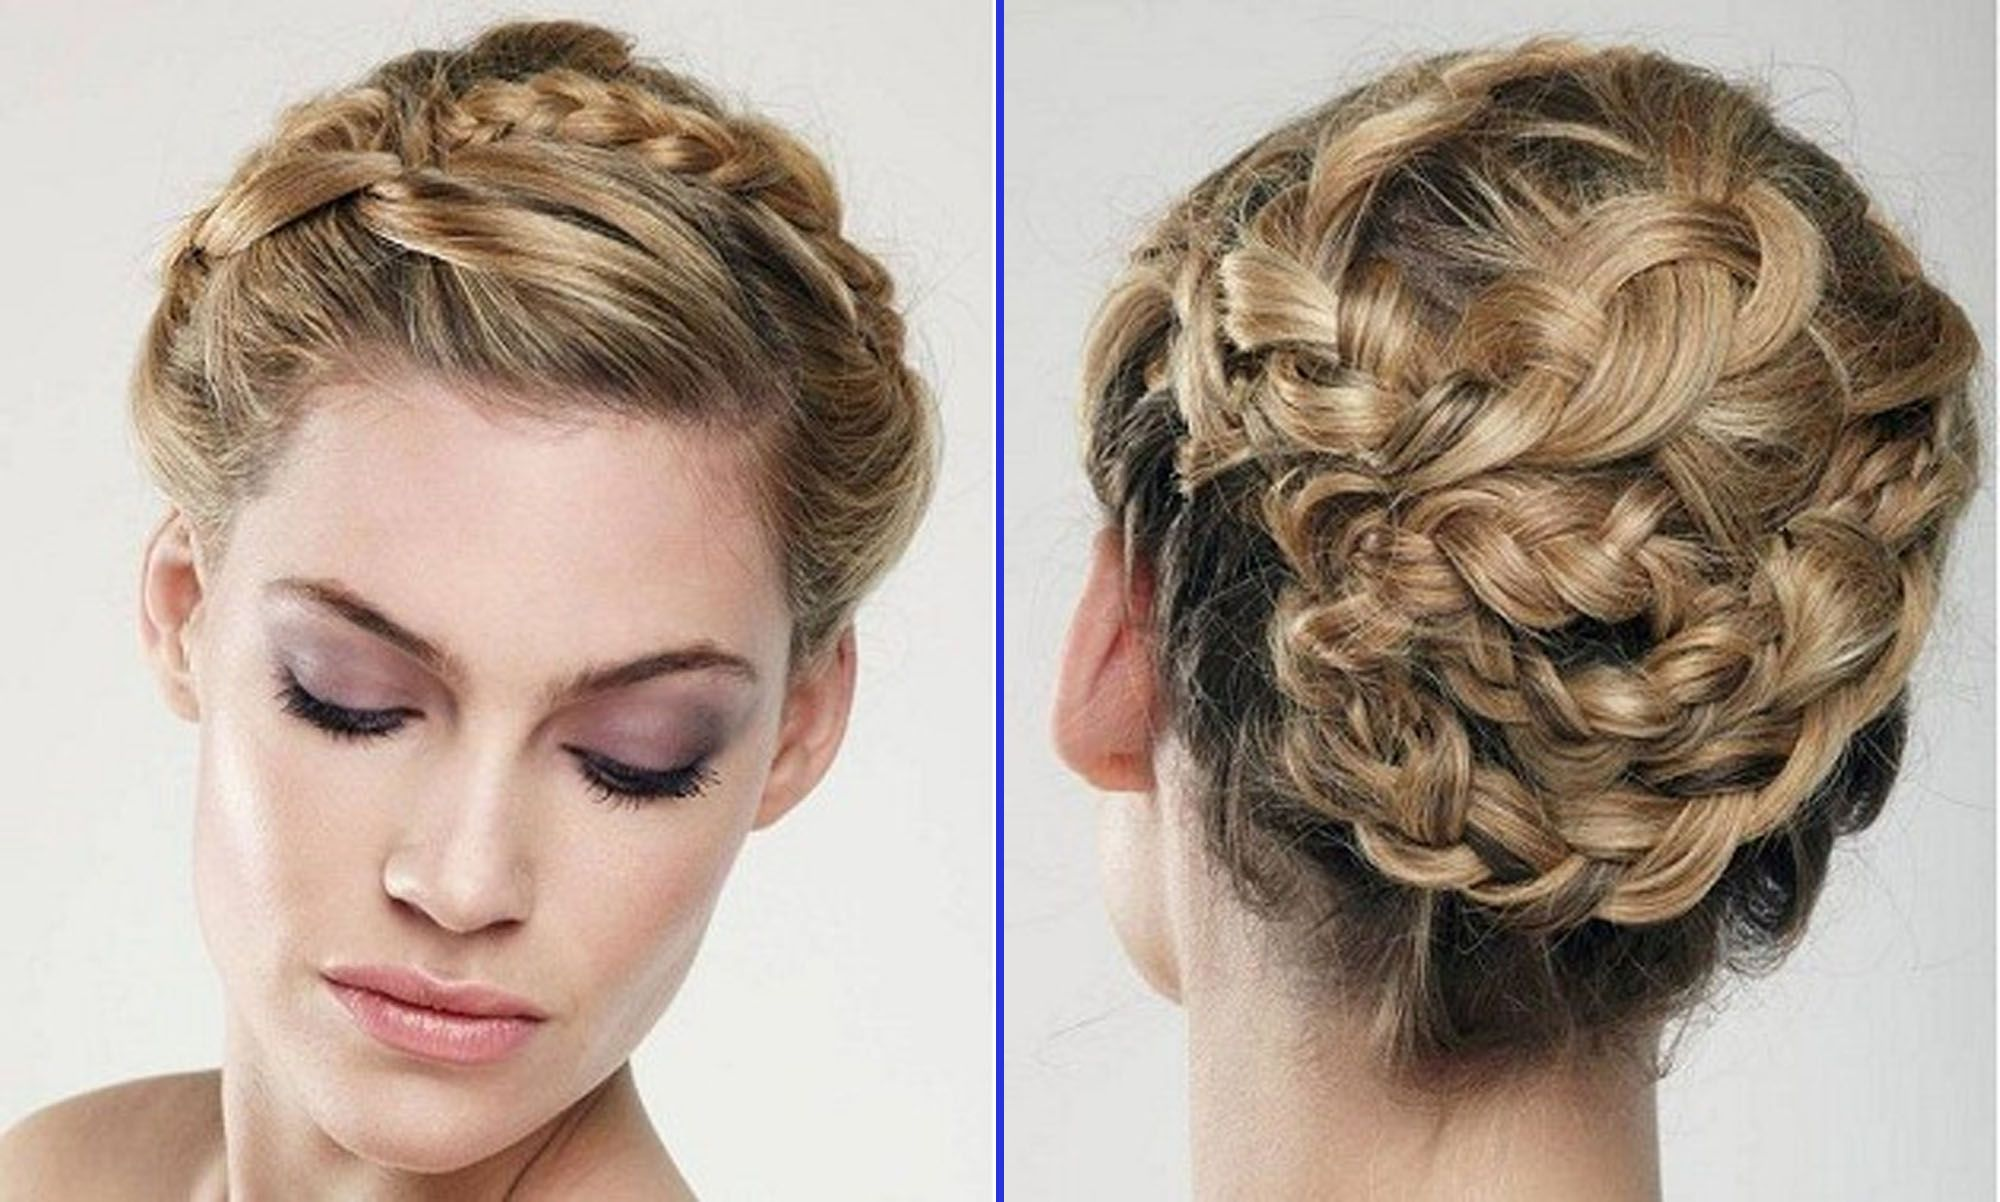 Strange Wedding Braid Hairstyle Wedding Planning Hair Pinterest Short Hairstyles Gunalazisus